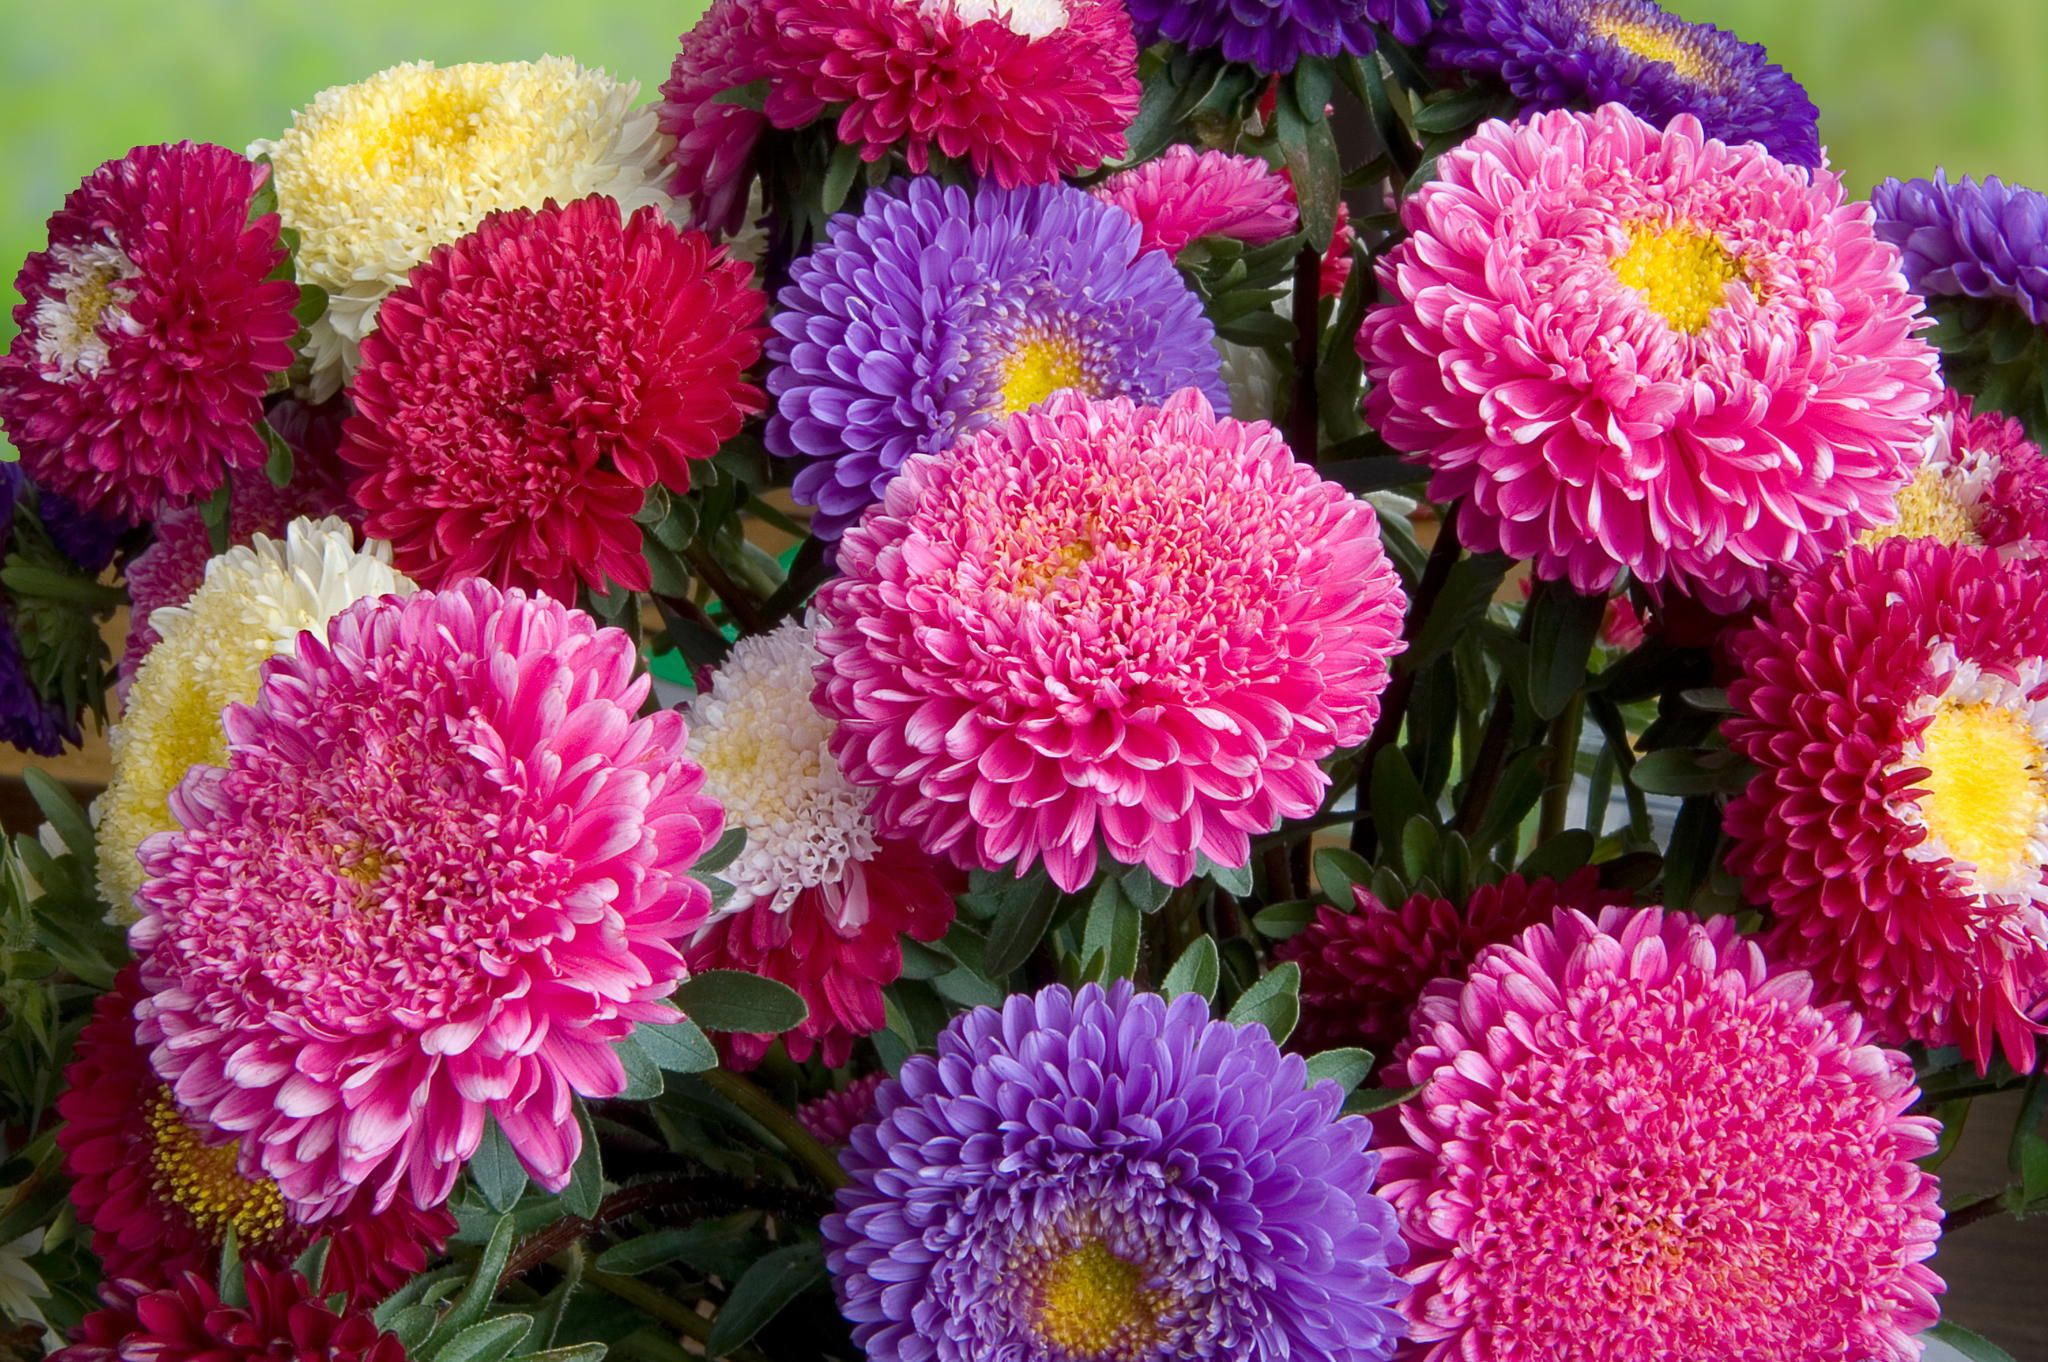 A bouquet of fresh asters by Marian on 500px Flower